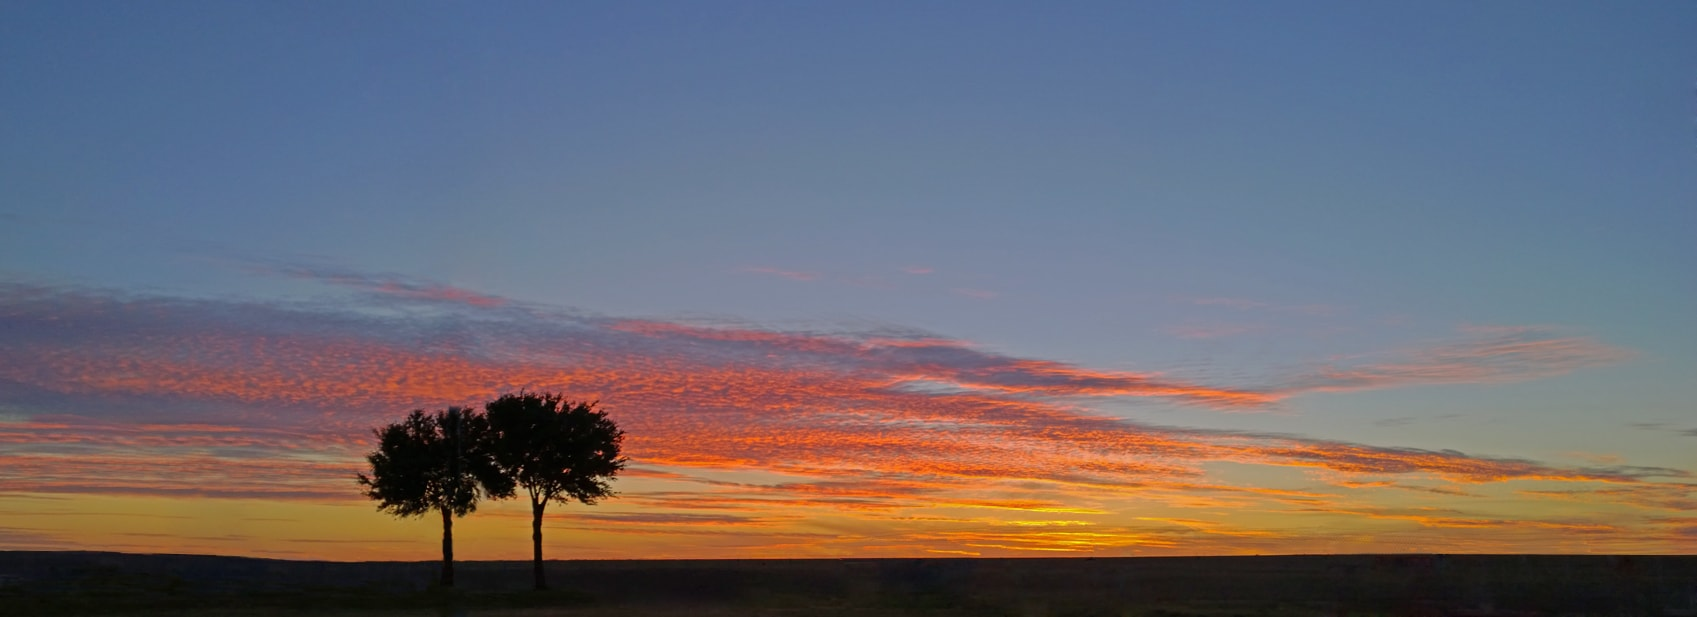 sunset-tree-airport-pano-2-min